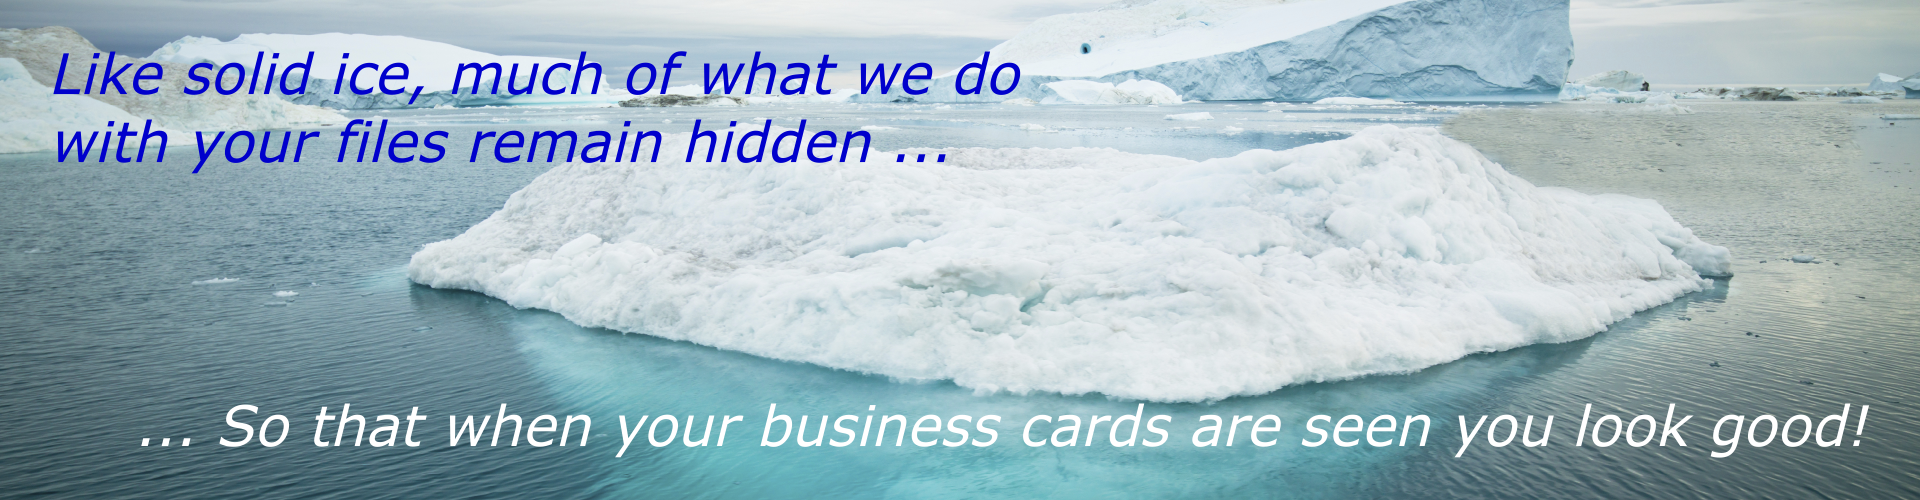 Premium deluxe business cards leeds city leeds ls1 west yorkshire reheart Choice Image